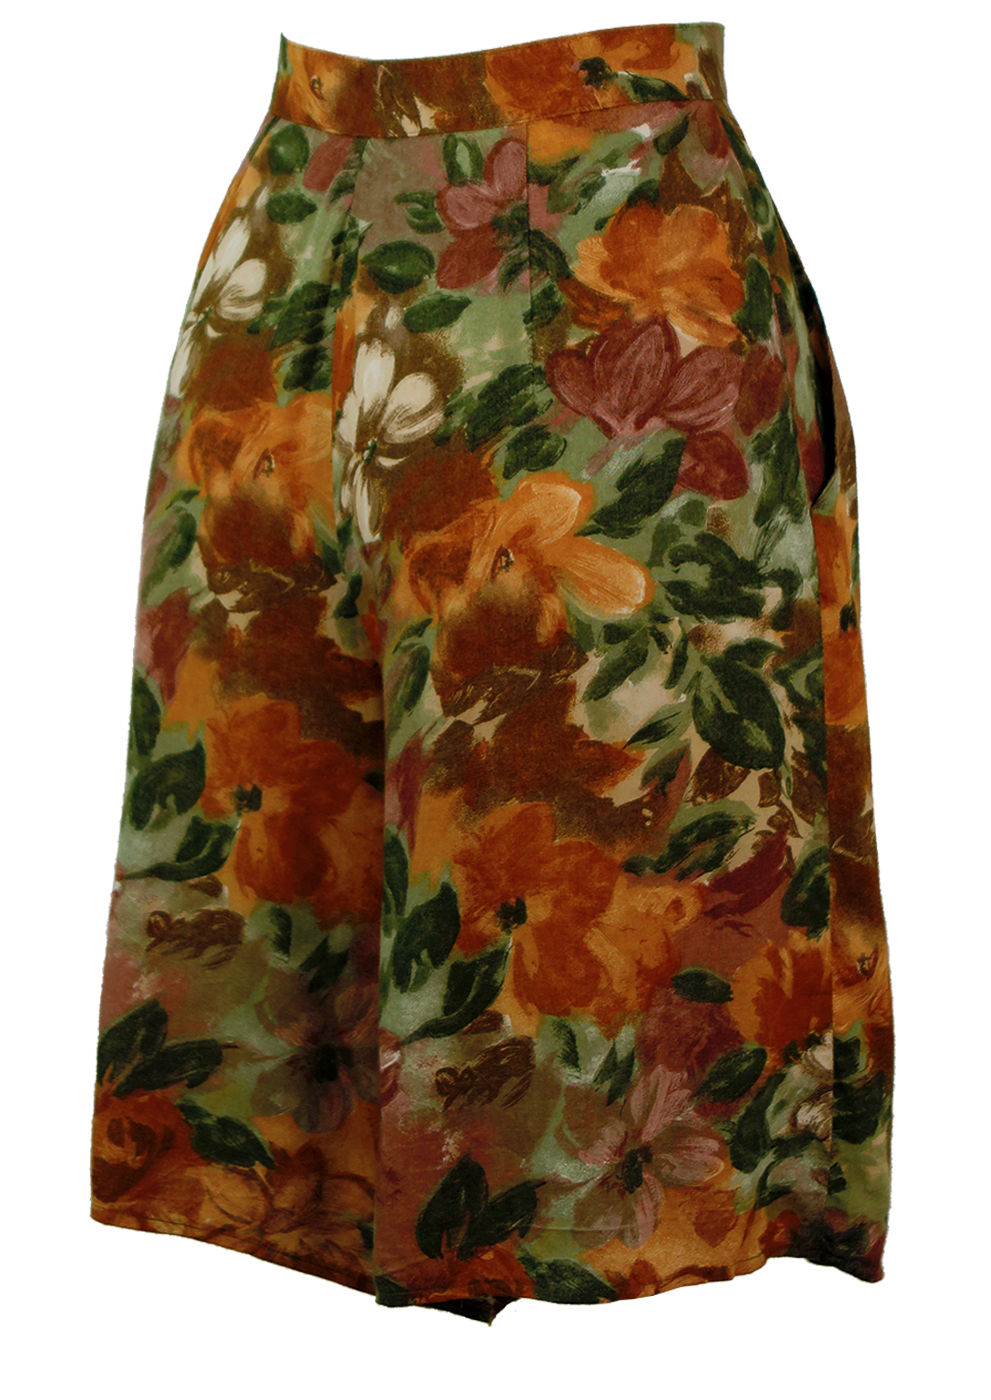 Olive Green, Ochre & Brown Abstract Floral Print Culottes